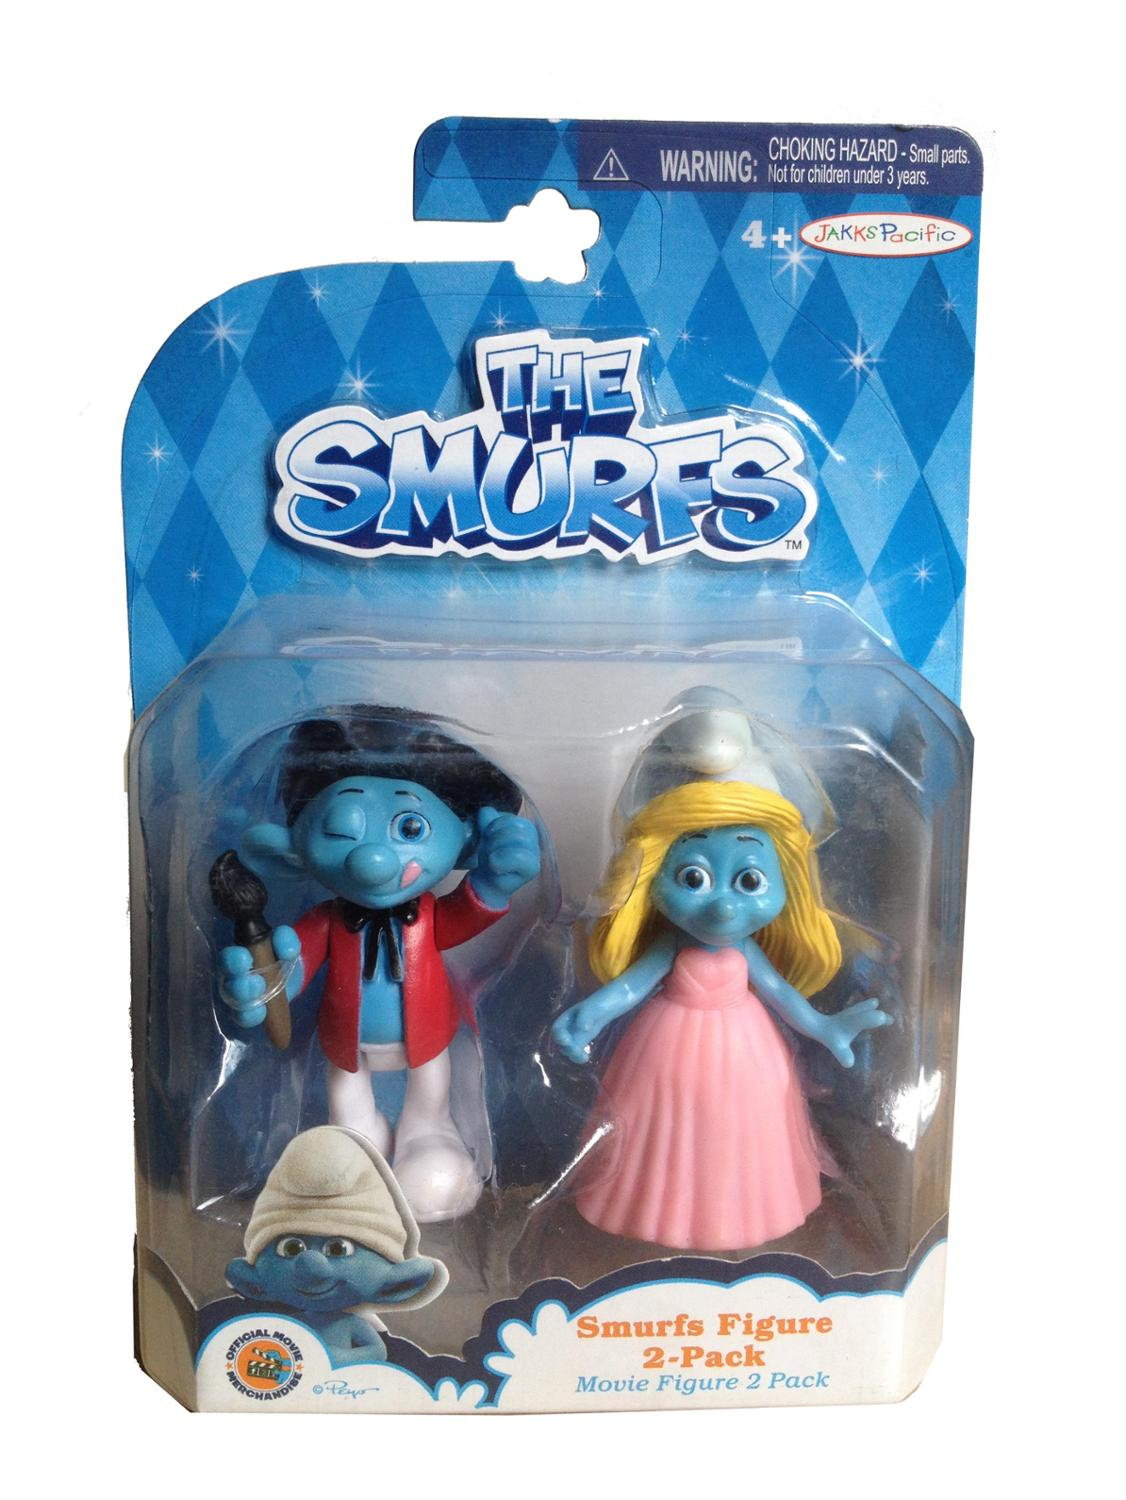 smurfette toys hands doll ornaments gargamel model toy doll gift Movies drawing figure version of double combination(China (Mainland))